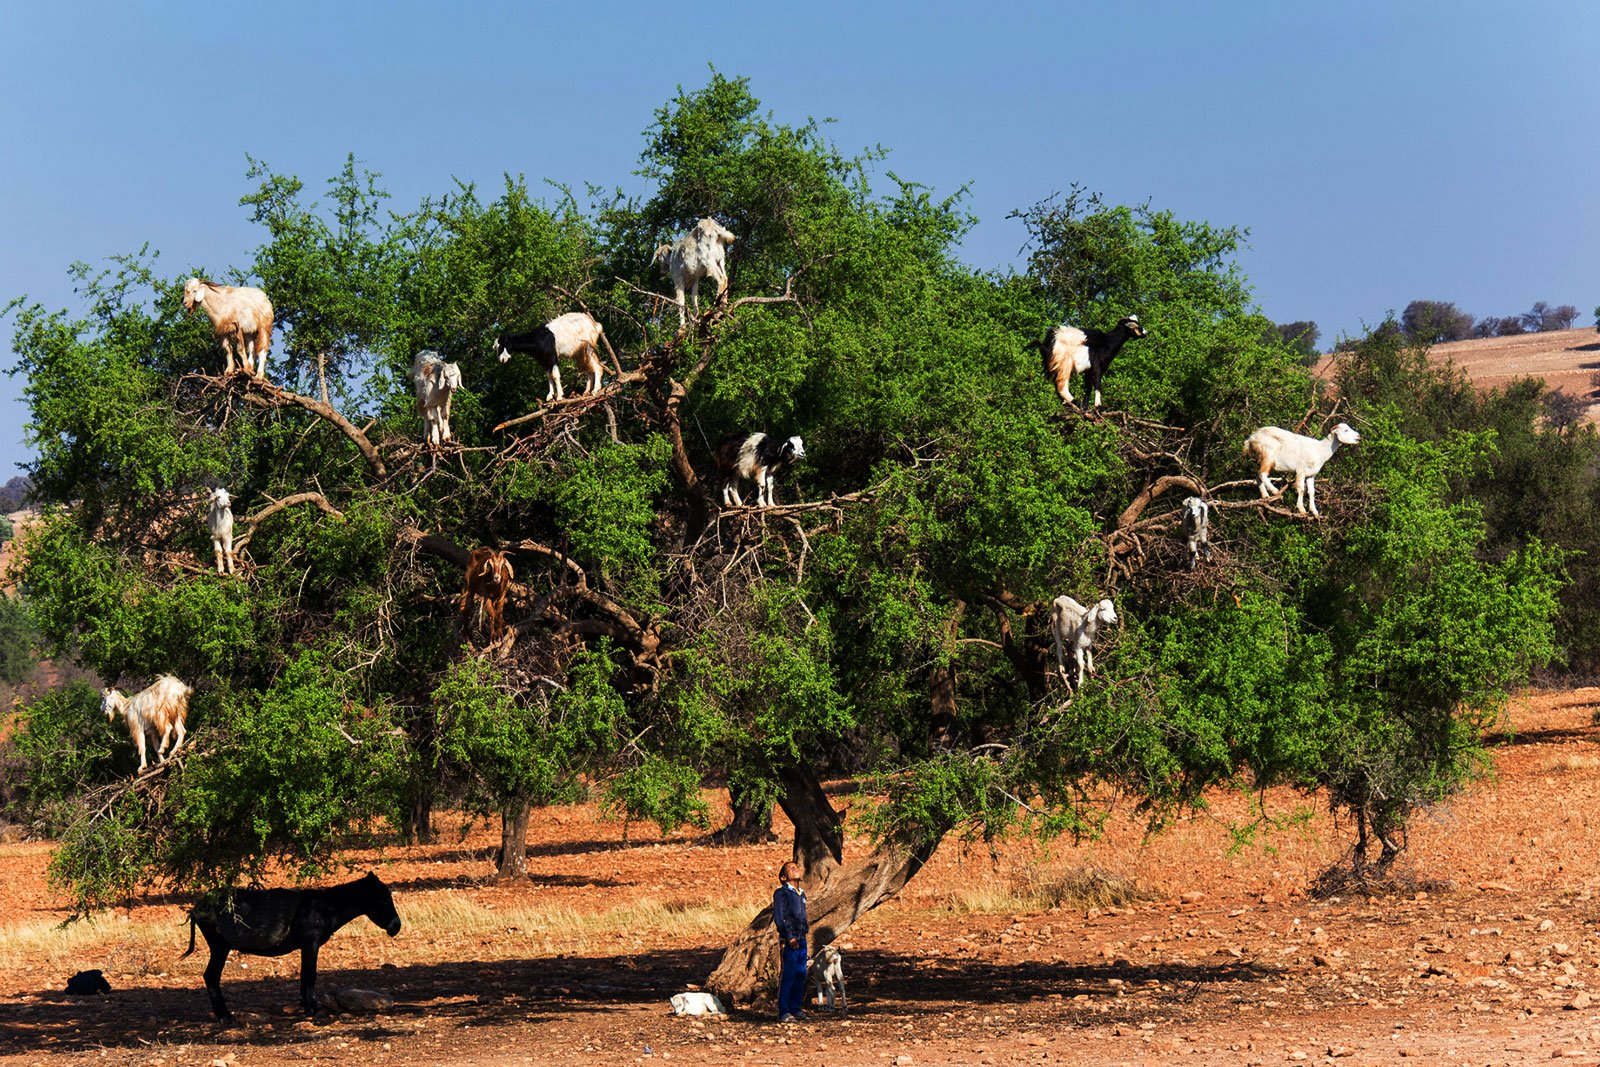 How to see goats grazing on trees in Marrakesh